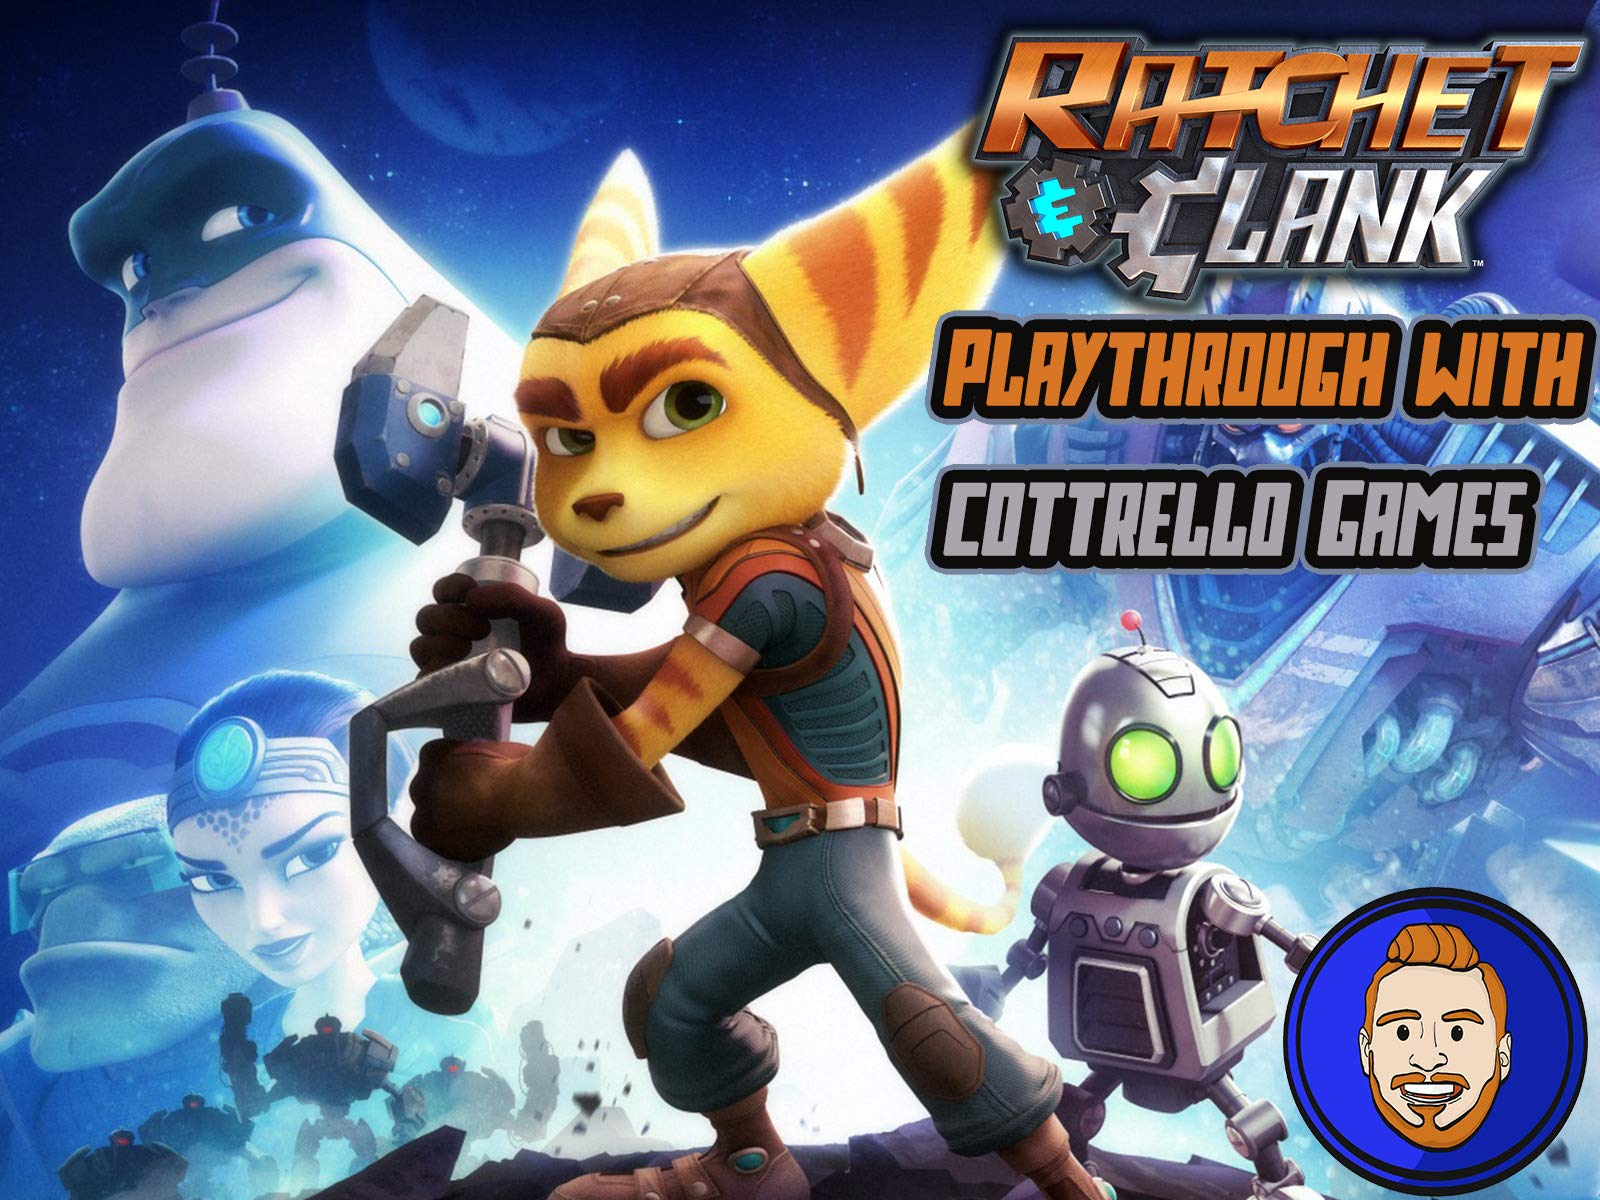 Ratchet & Clank Playthrough with Cottrello Games